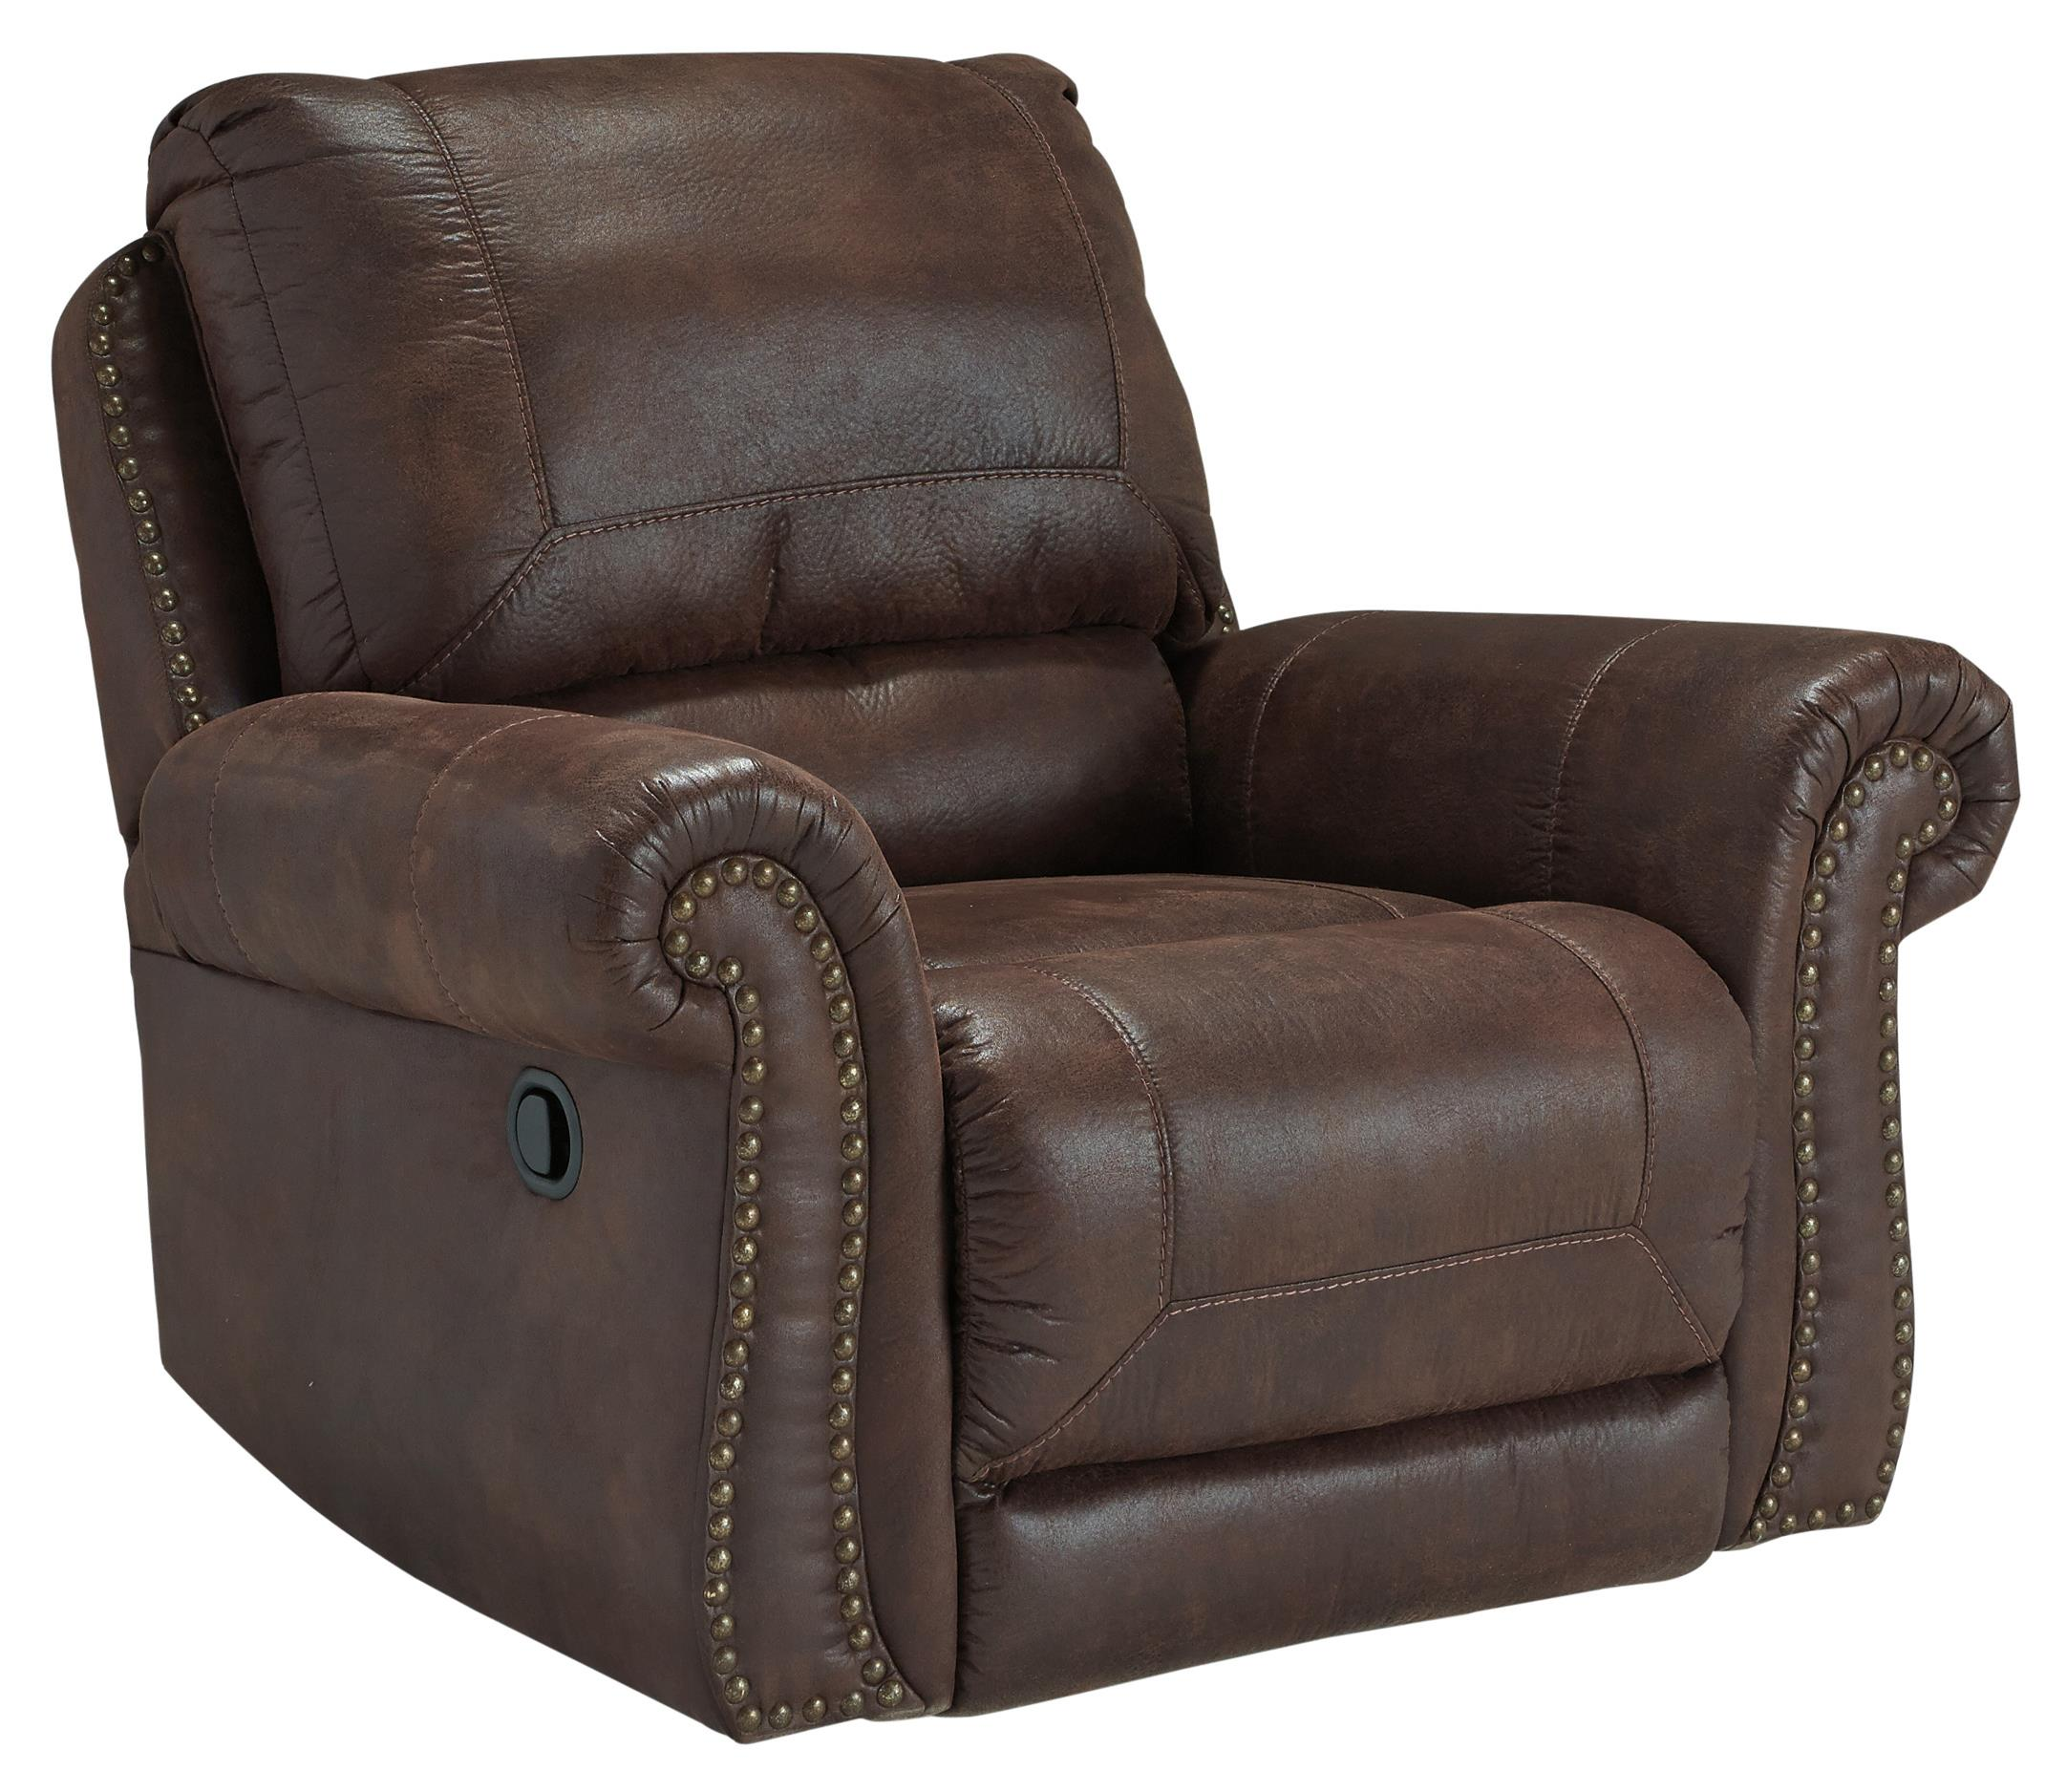 rolled arm sofa with nailhead trim reasonably priced sofas benchcraft breville faux leather rocker recliner